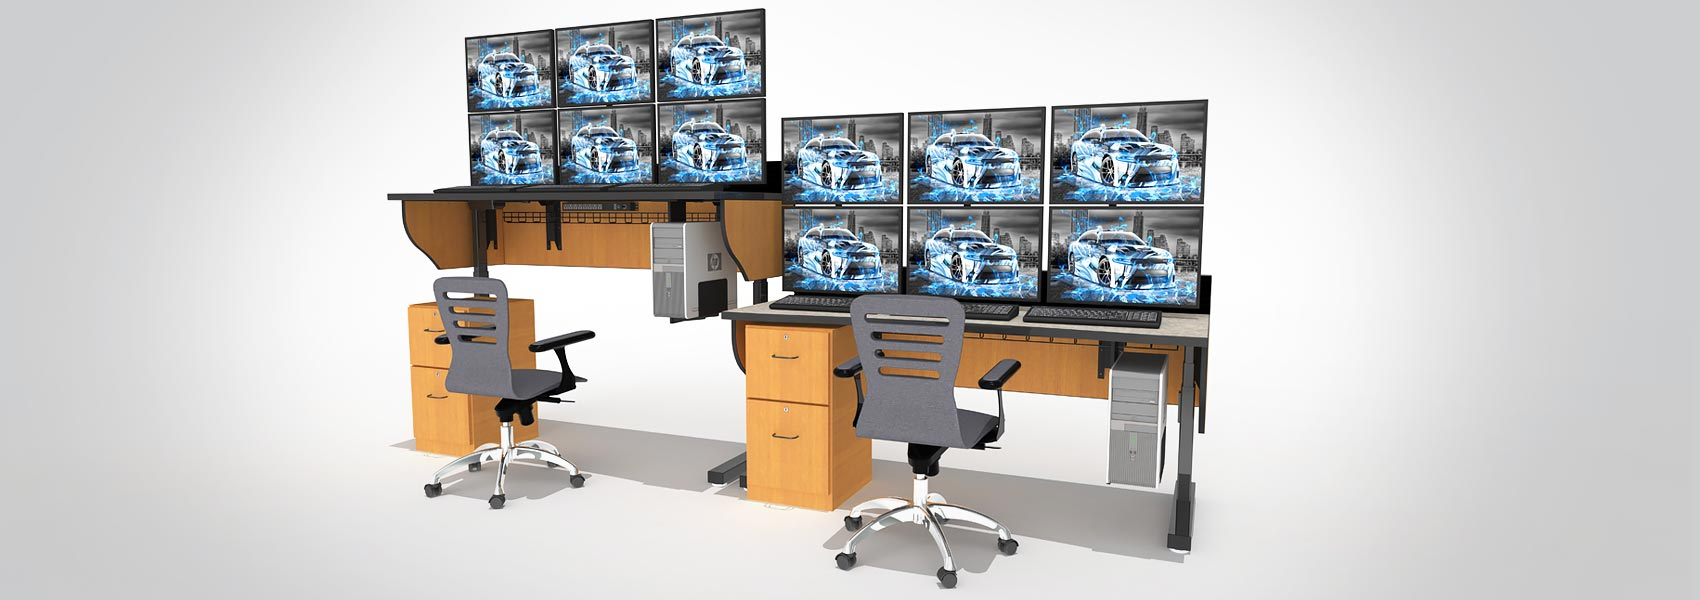 Sit-Stand-Control-Room-Console-Main-2